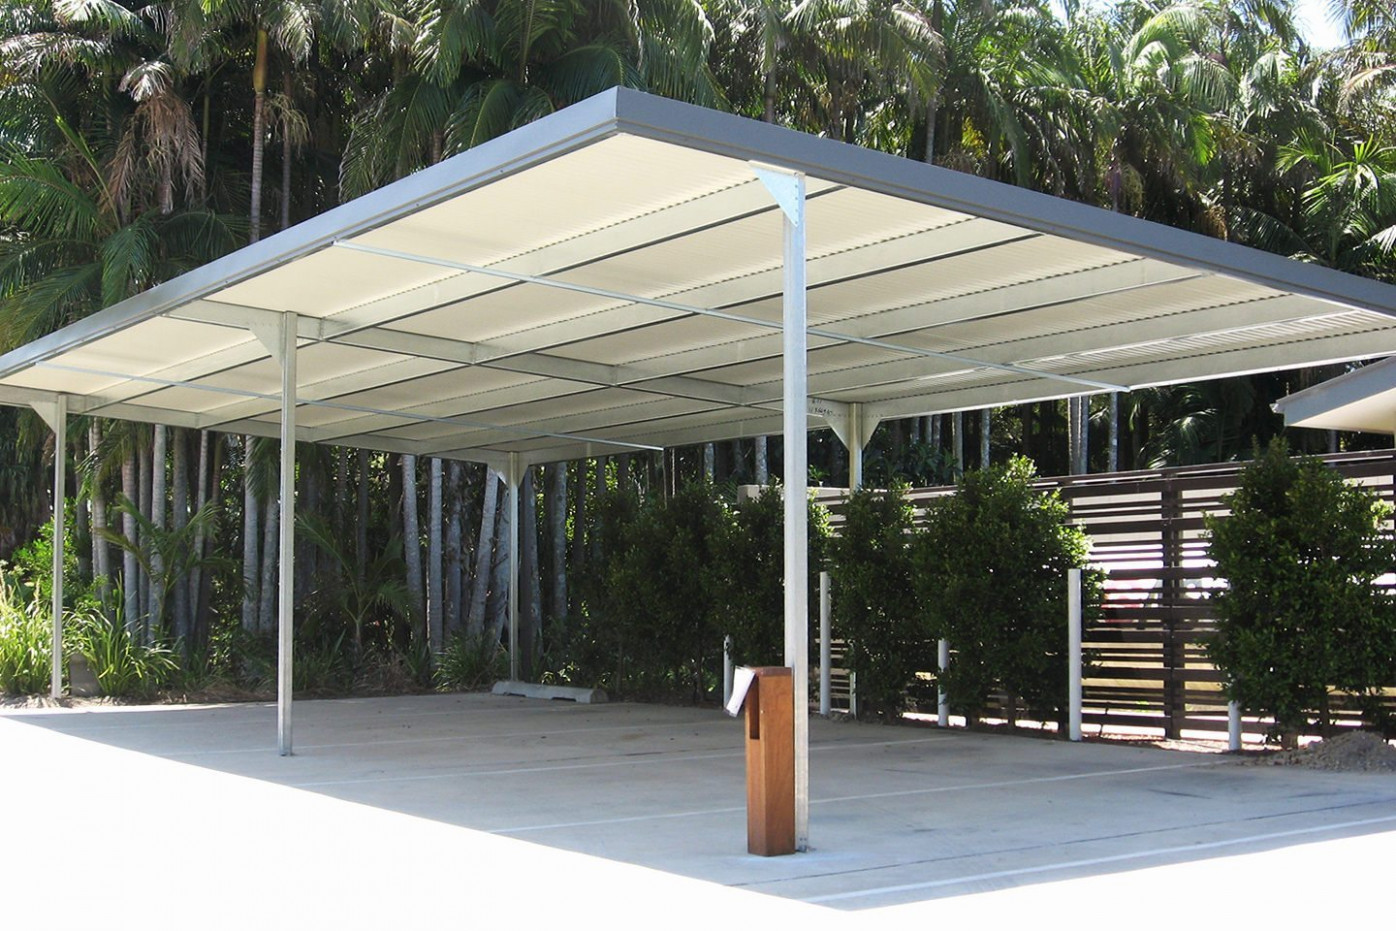 Carports Sheds And Garages For Sale Ranbuild Carport With Barn Roof